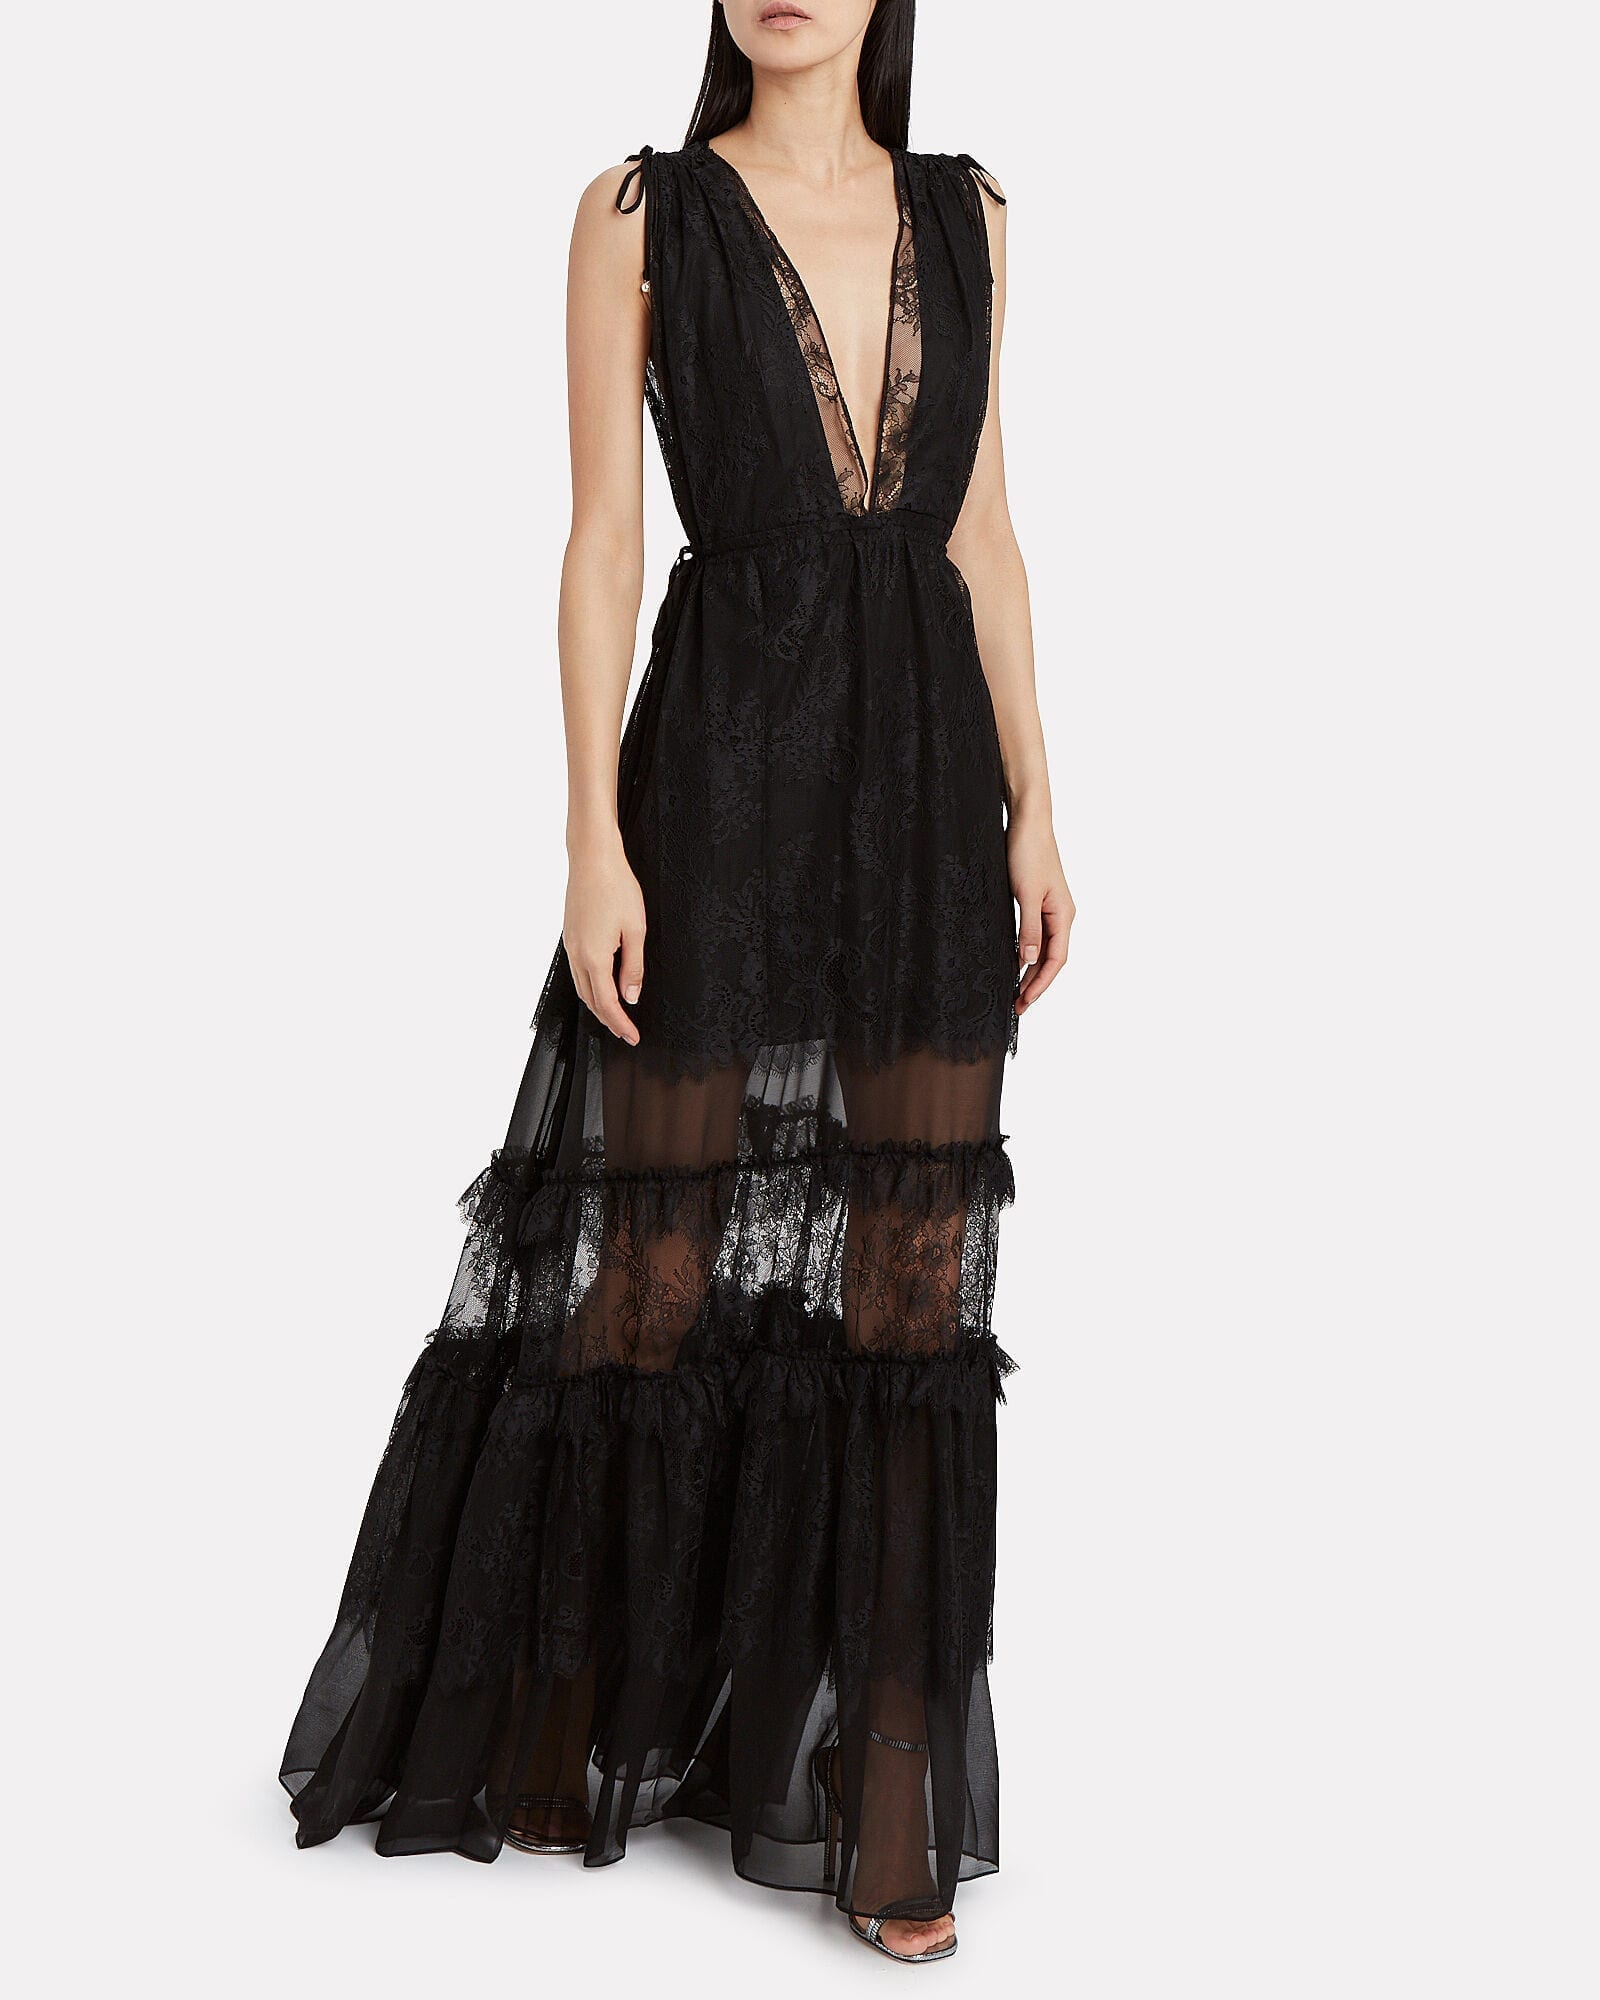 ALEXIS Umbra Tiered Lace Gown